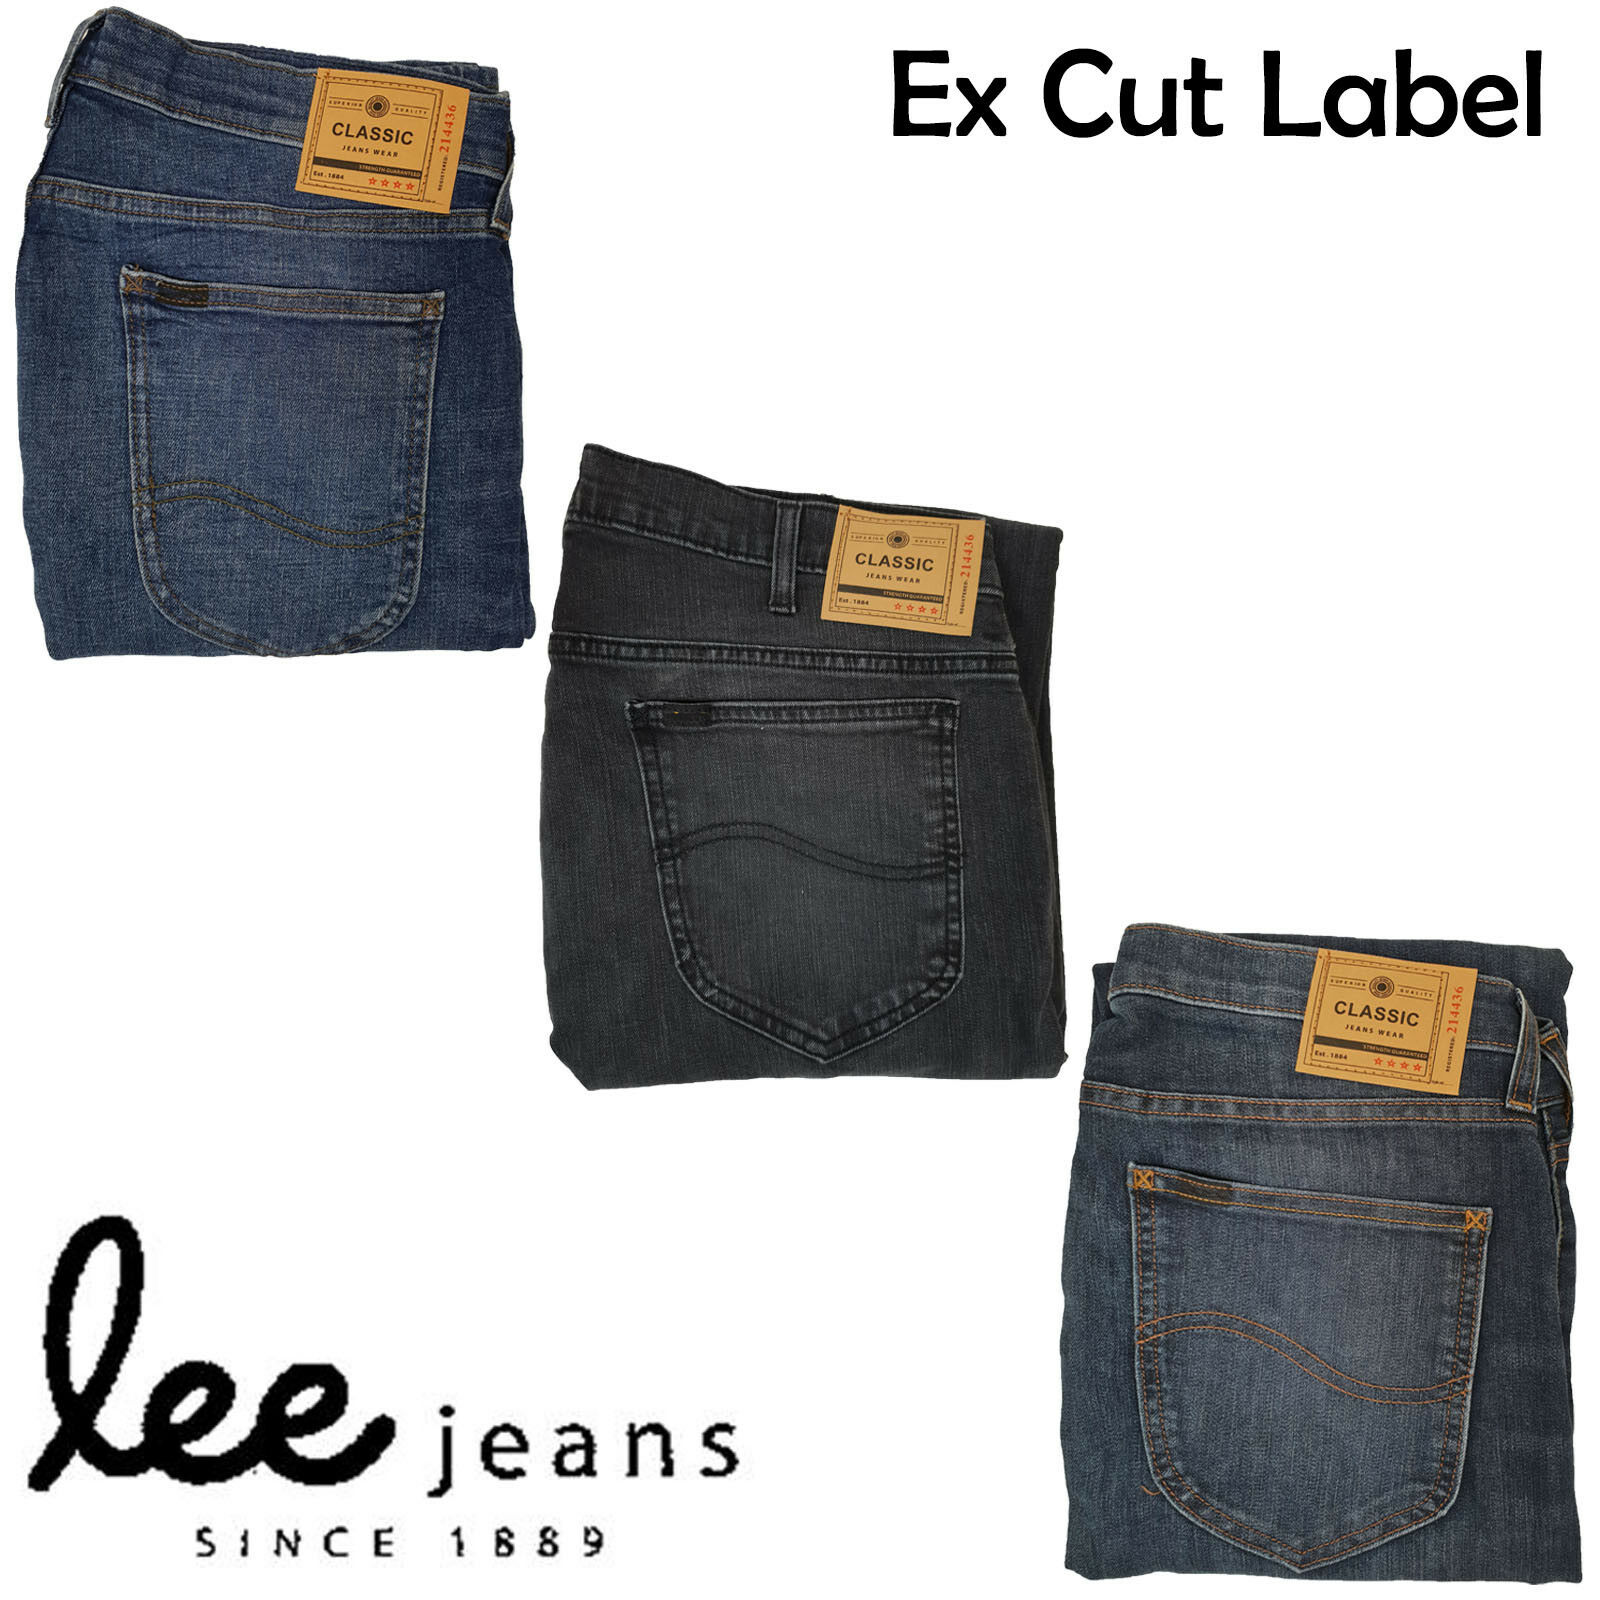 71b90ddc59 Mens Cut Label Lee Ex Store Jeans Skinny Stretch Iconic Zip Fly Cotton UK  26-48